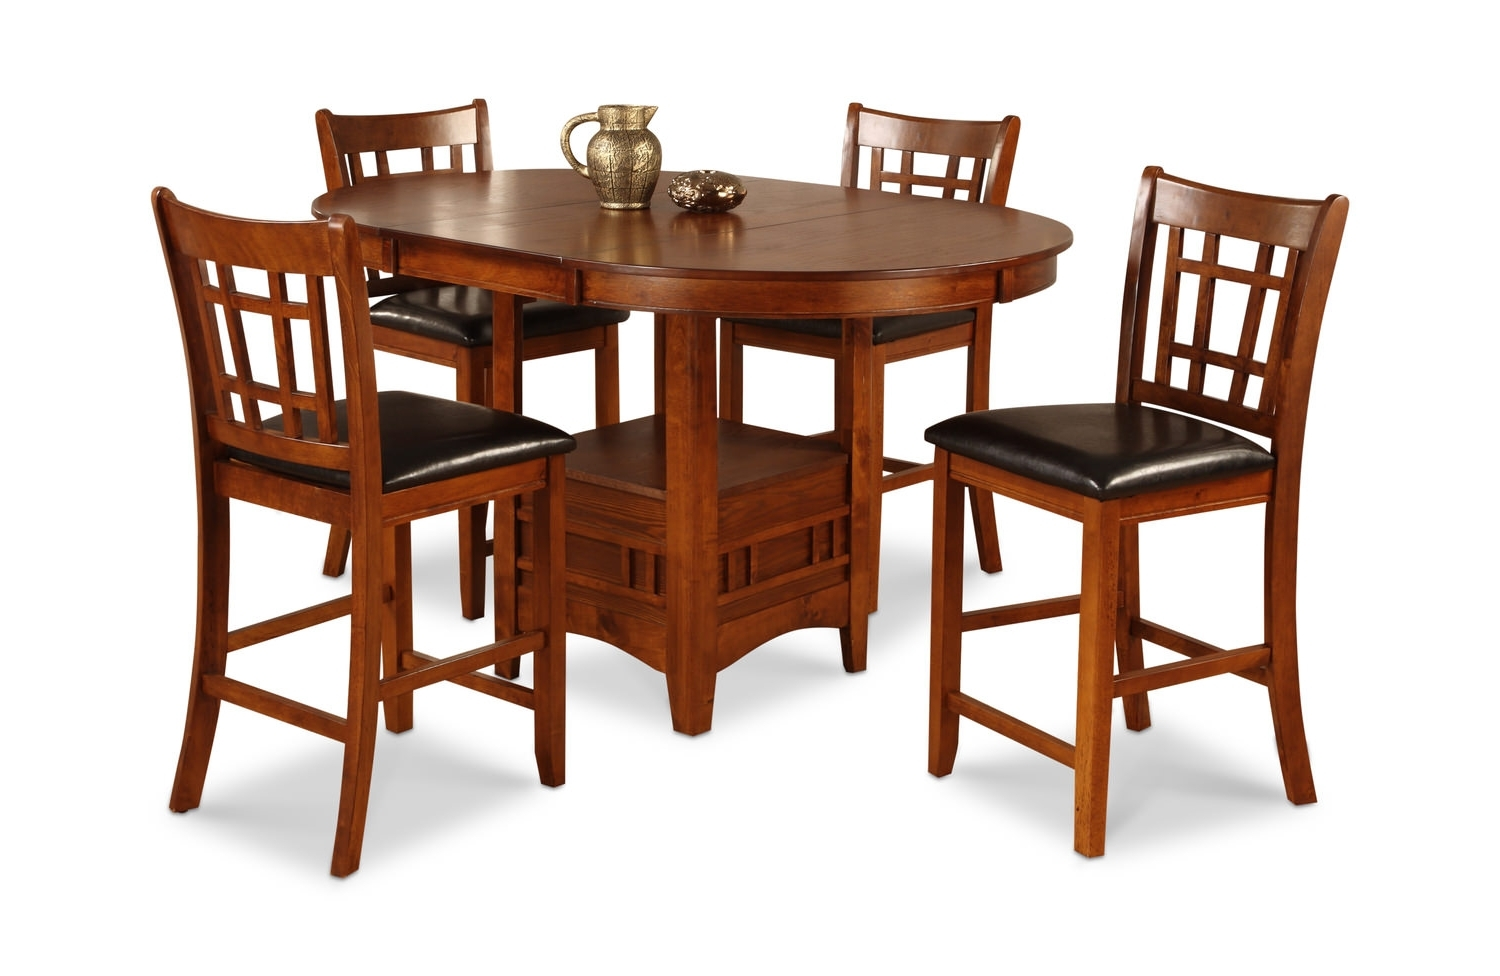 Chapleau Ii 7 Piece Extension Dining Table Sets Pertaining To Most Up To Date Dining Sets – Kitchen & Dining Room Sets – Hom Furniture (View 12 of 25)